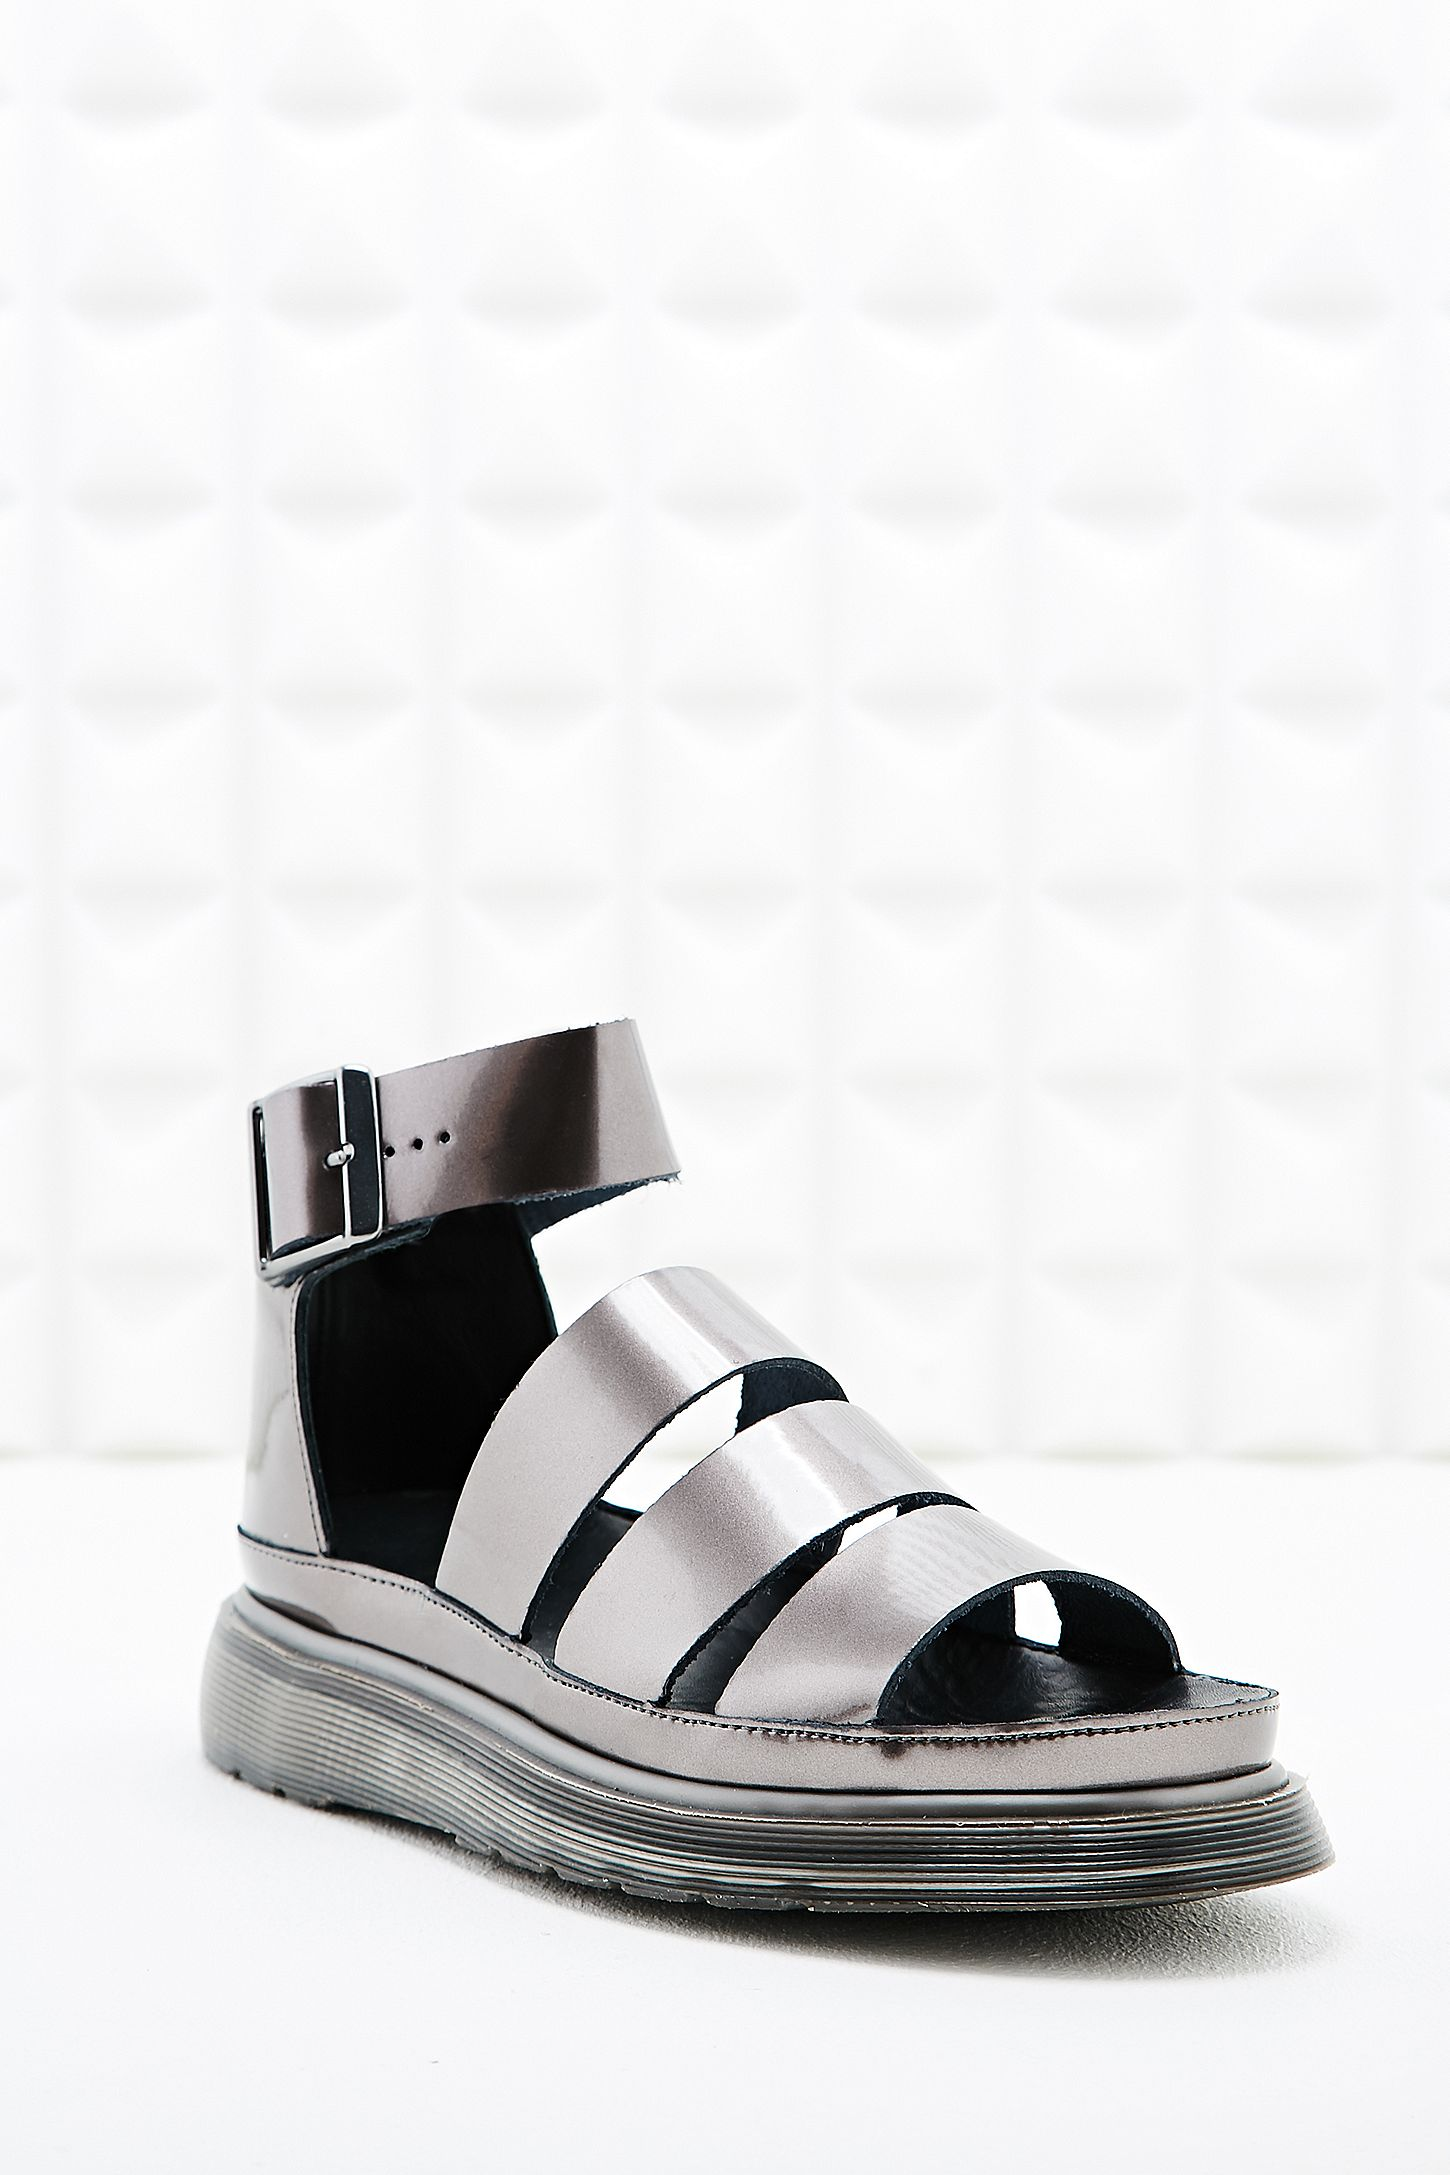 eddf4b58d5a8 Dr. Martens Clarissa Strap Sandals in Pewter. Click on image to zoom. Hover  to zoom. Double Tap to Zoom